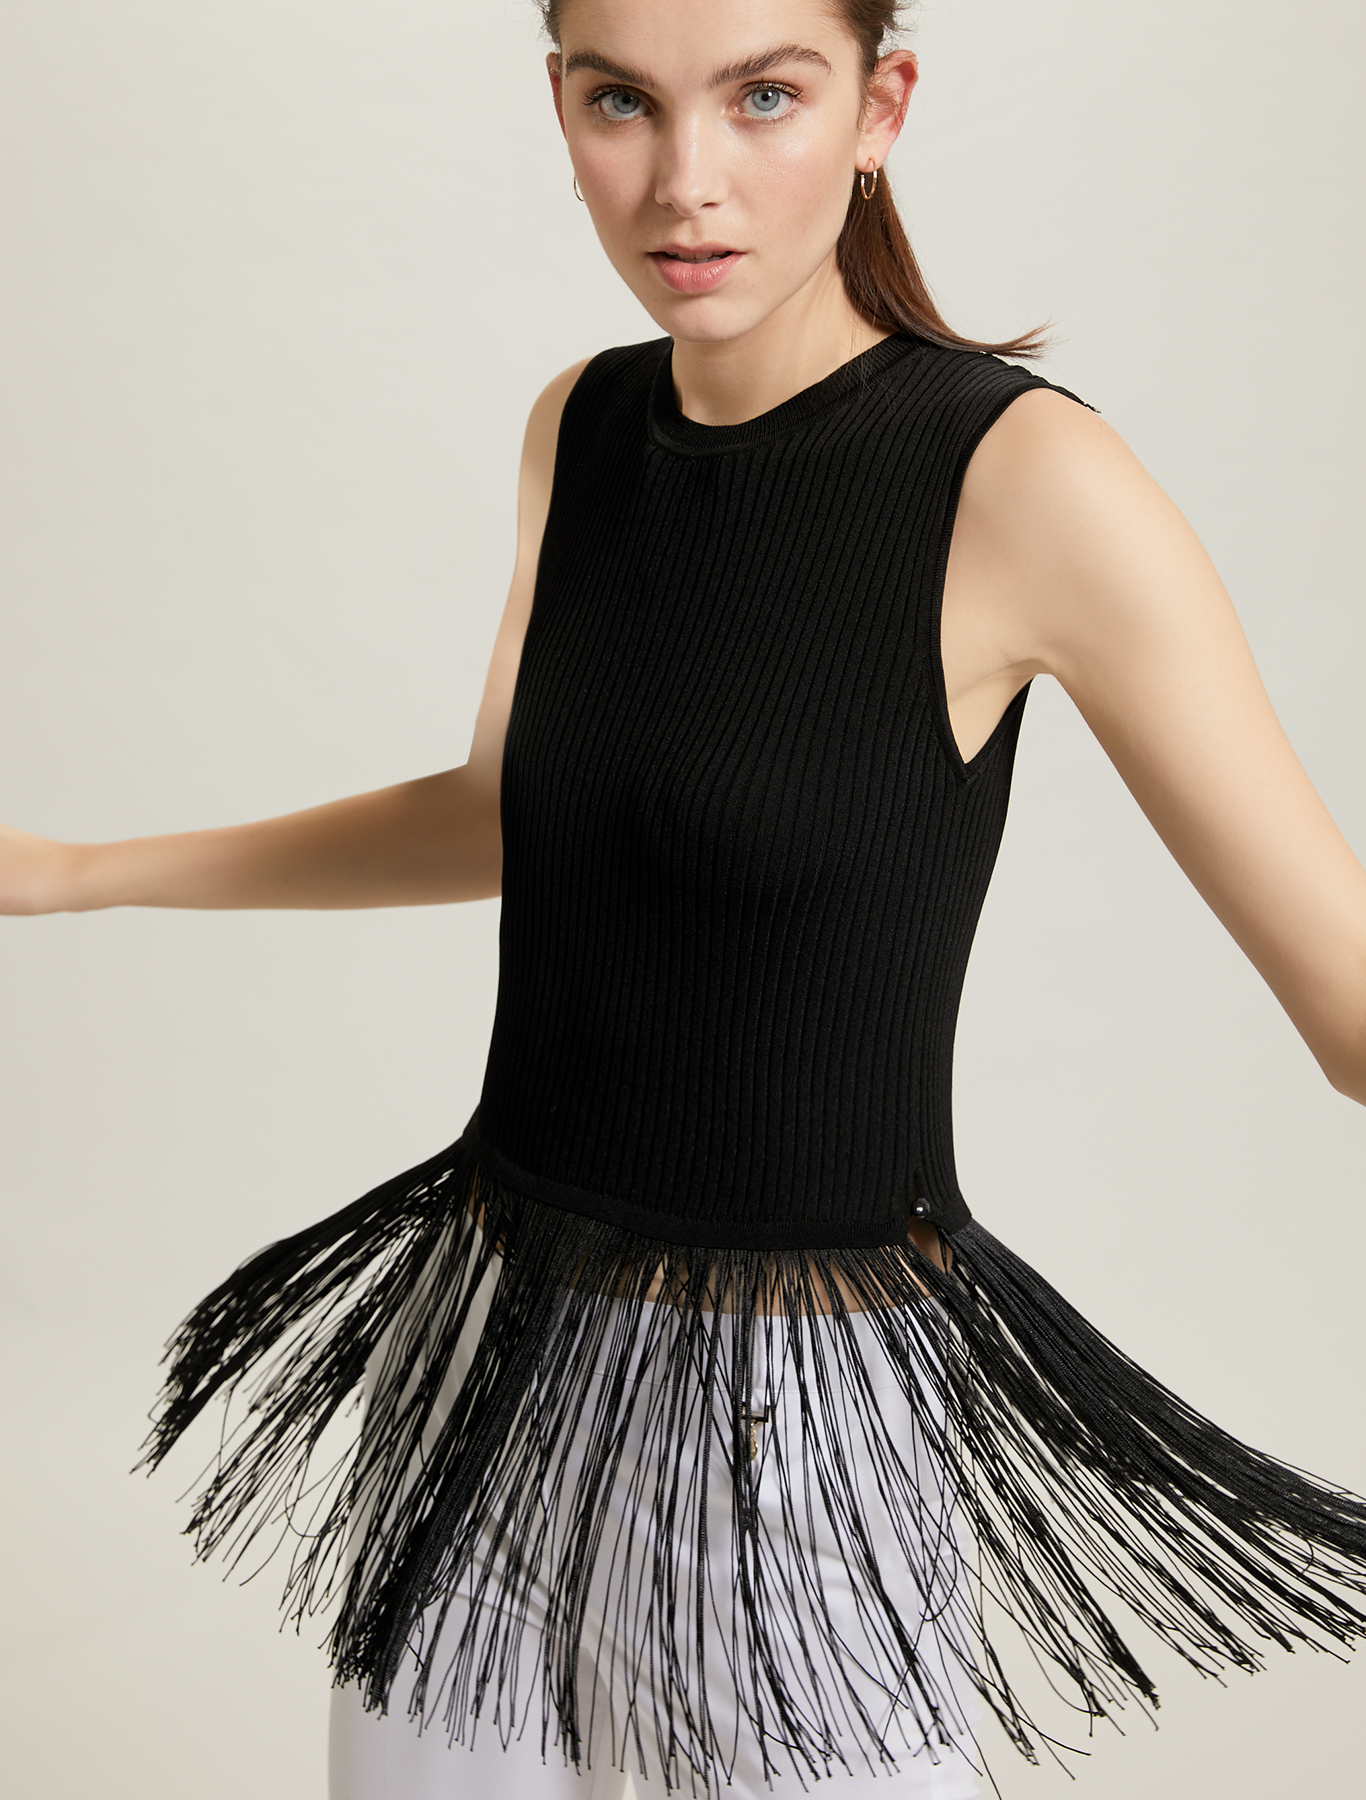 Knit top with maxi fringe - black - pennyblack